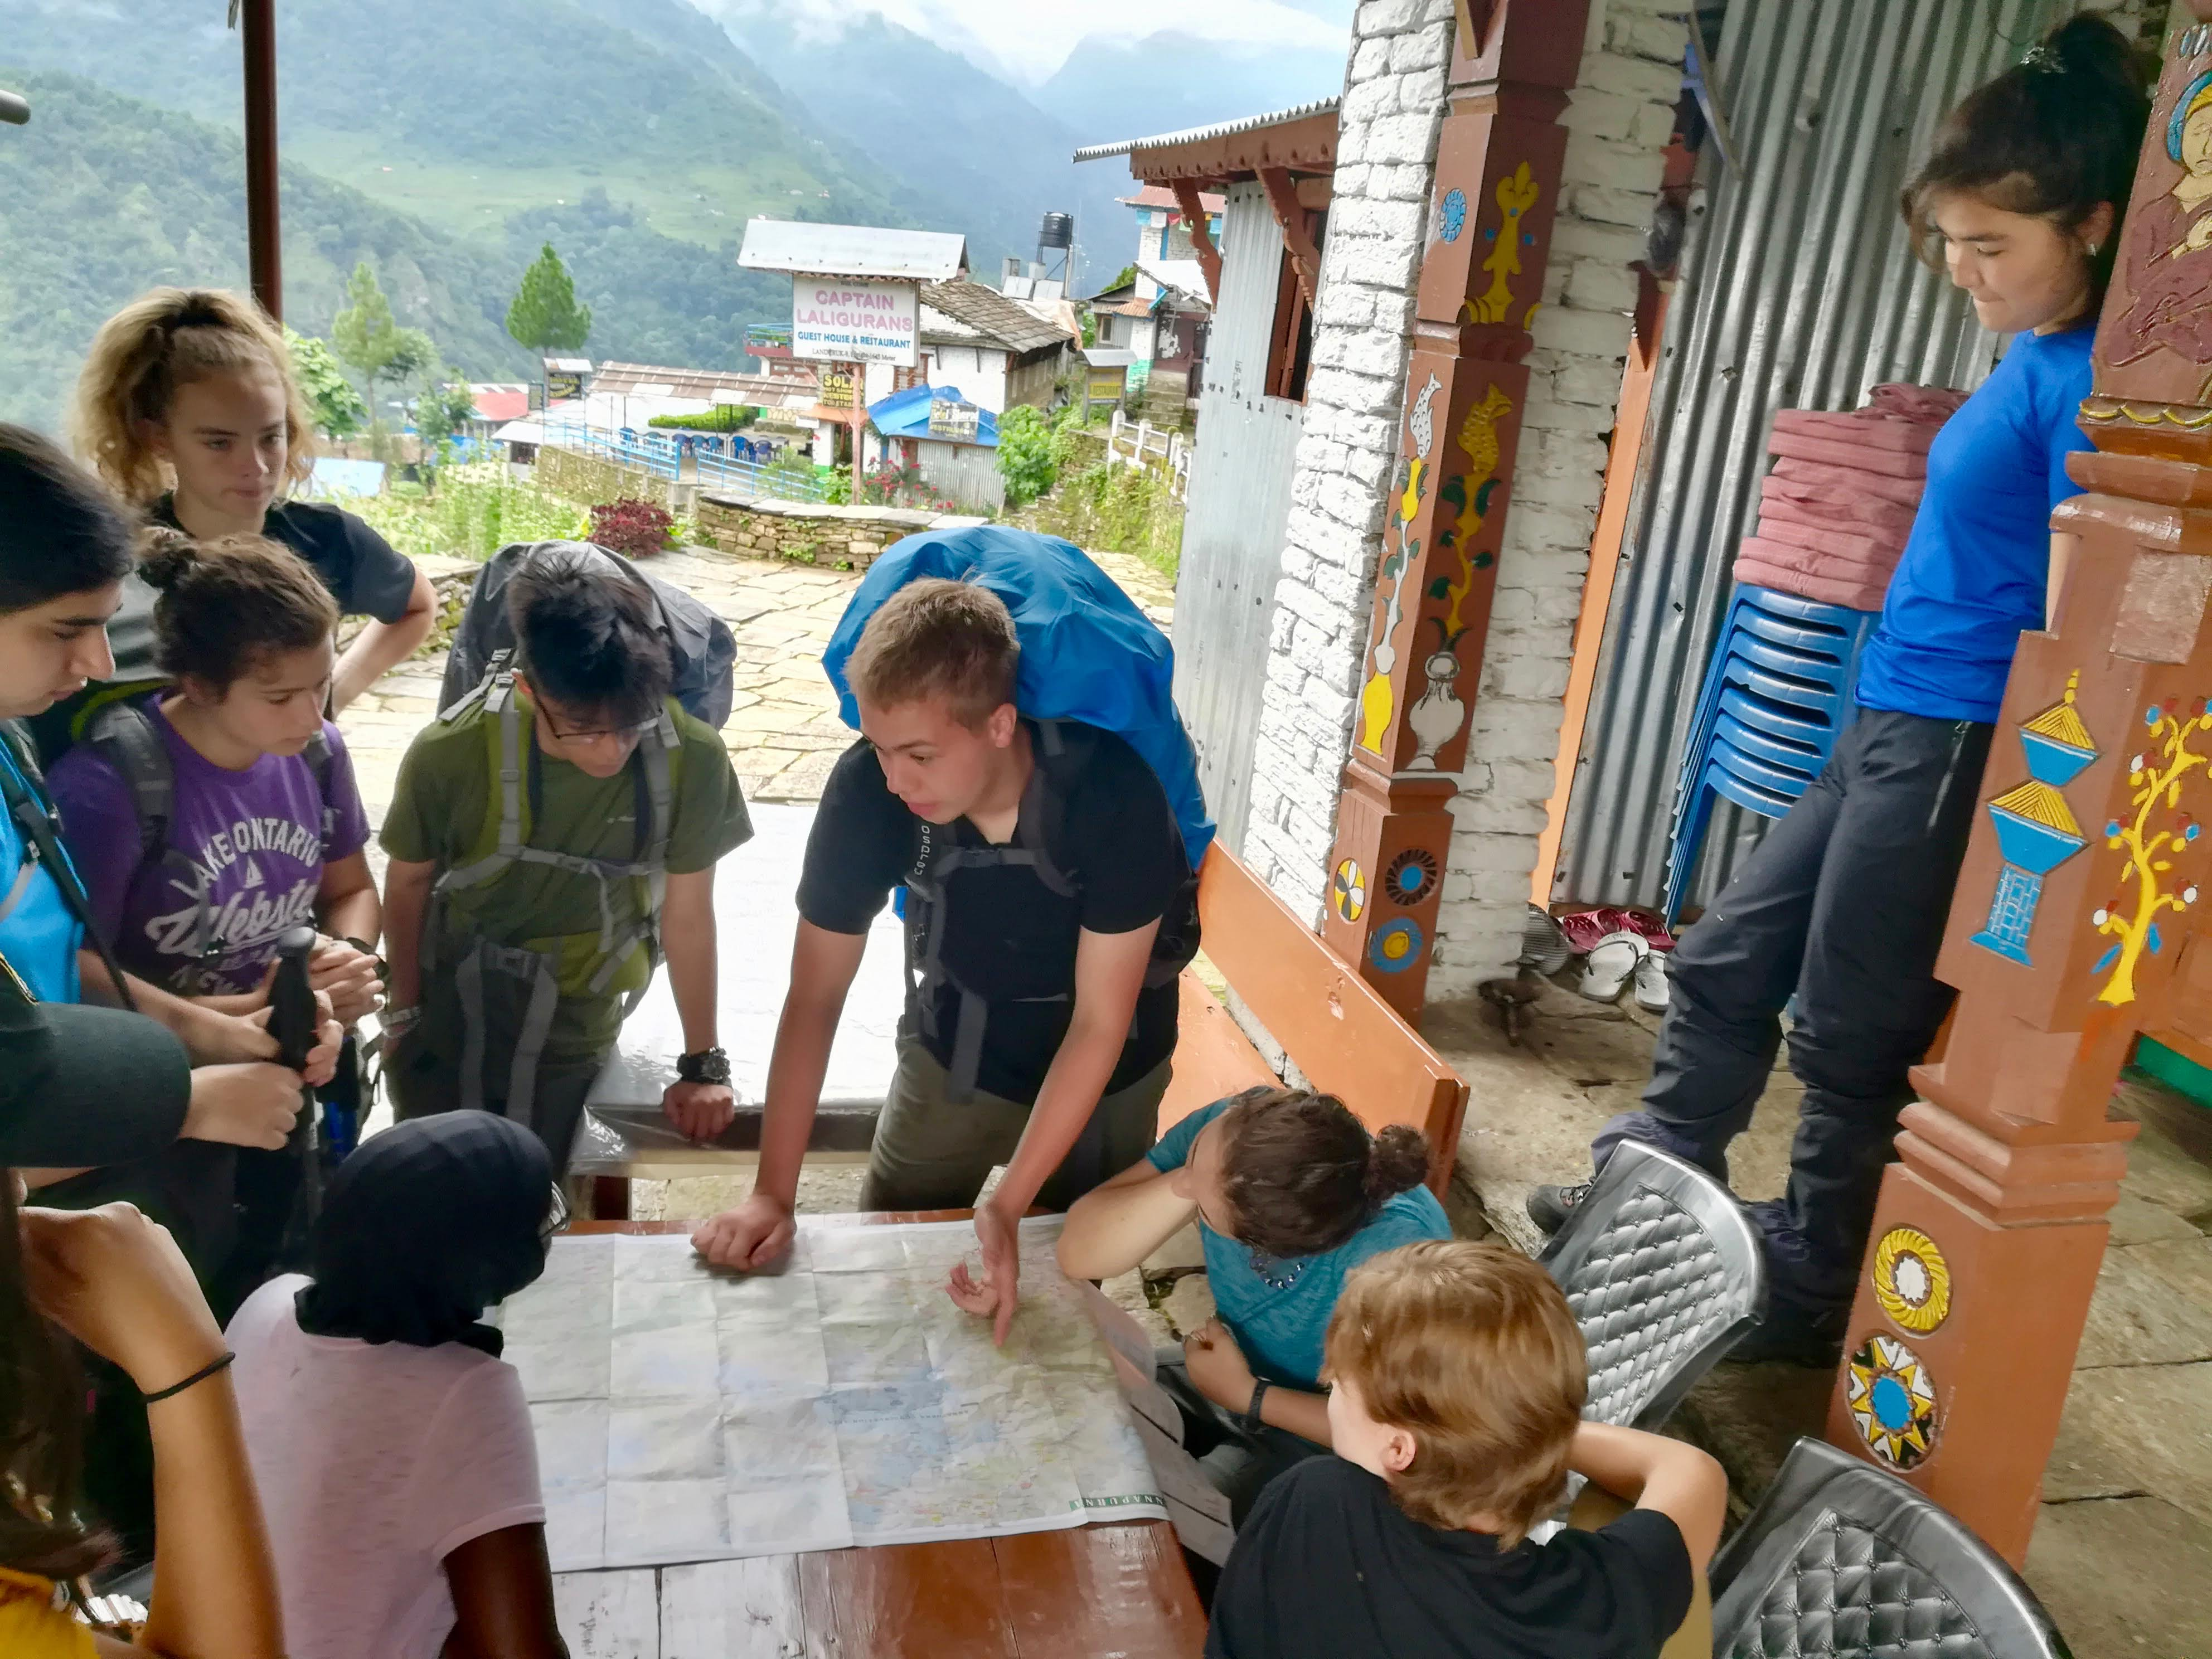 Summer Program - Travel And Tourism | Global Routes: Nepal. The Roof of the World. Service and Cultural Immersion.